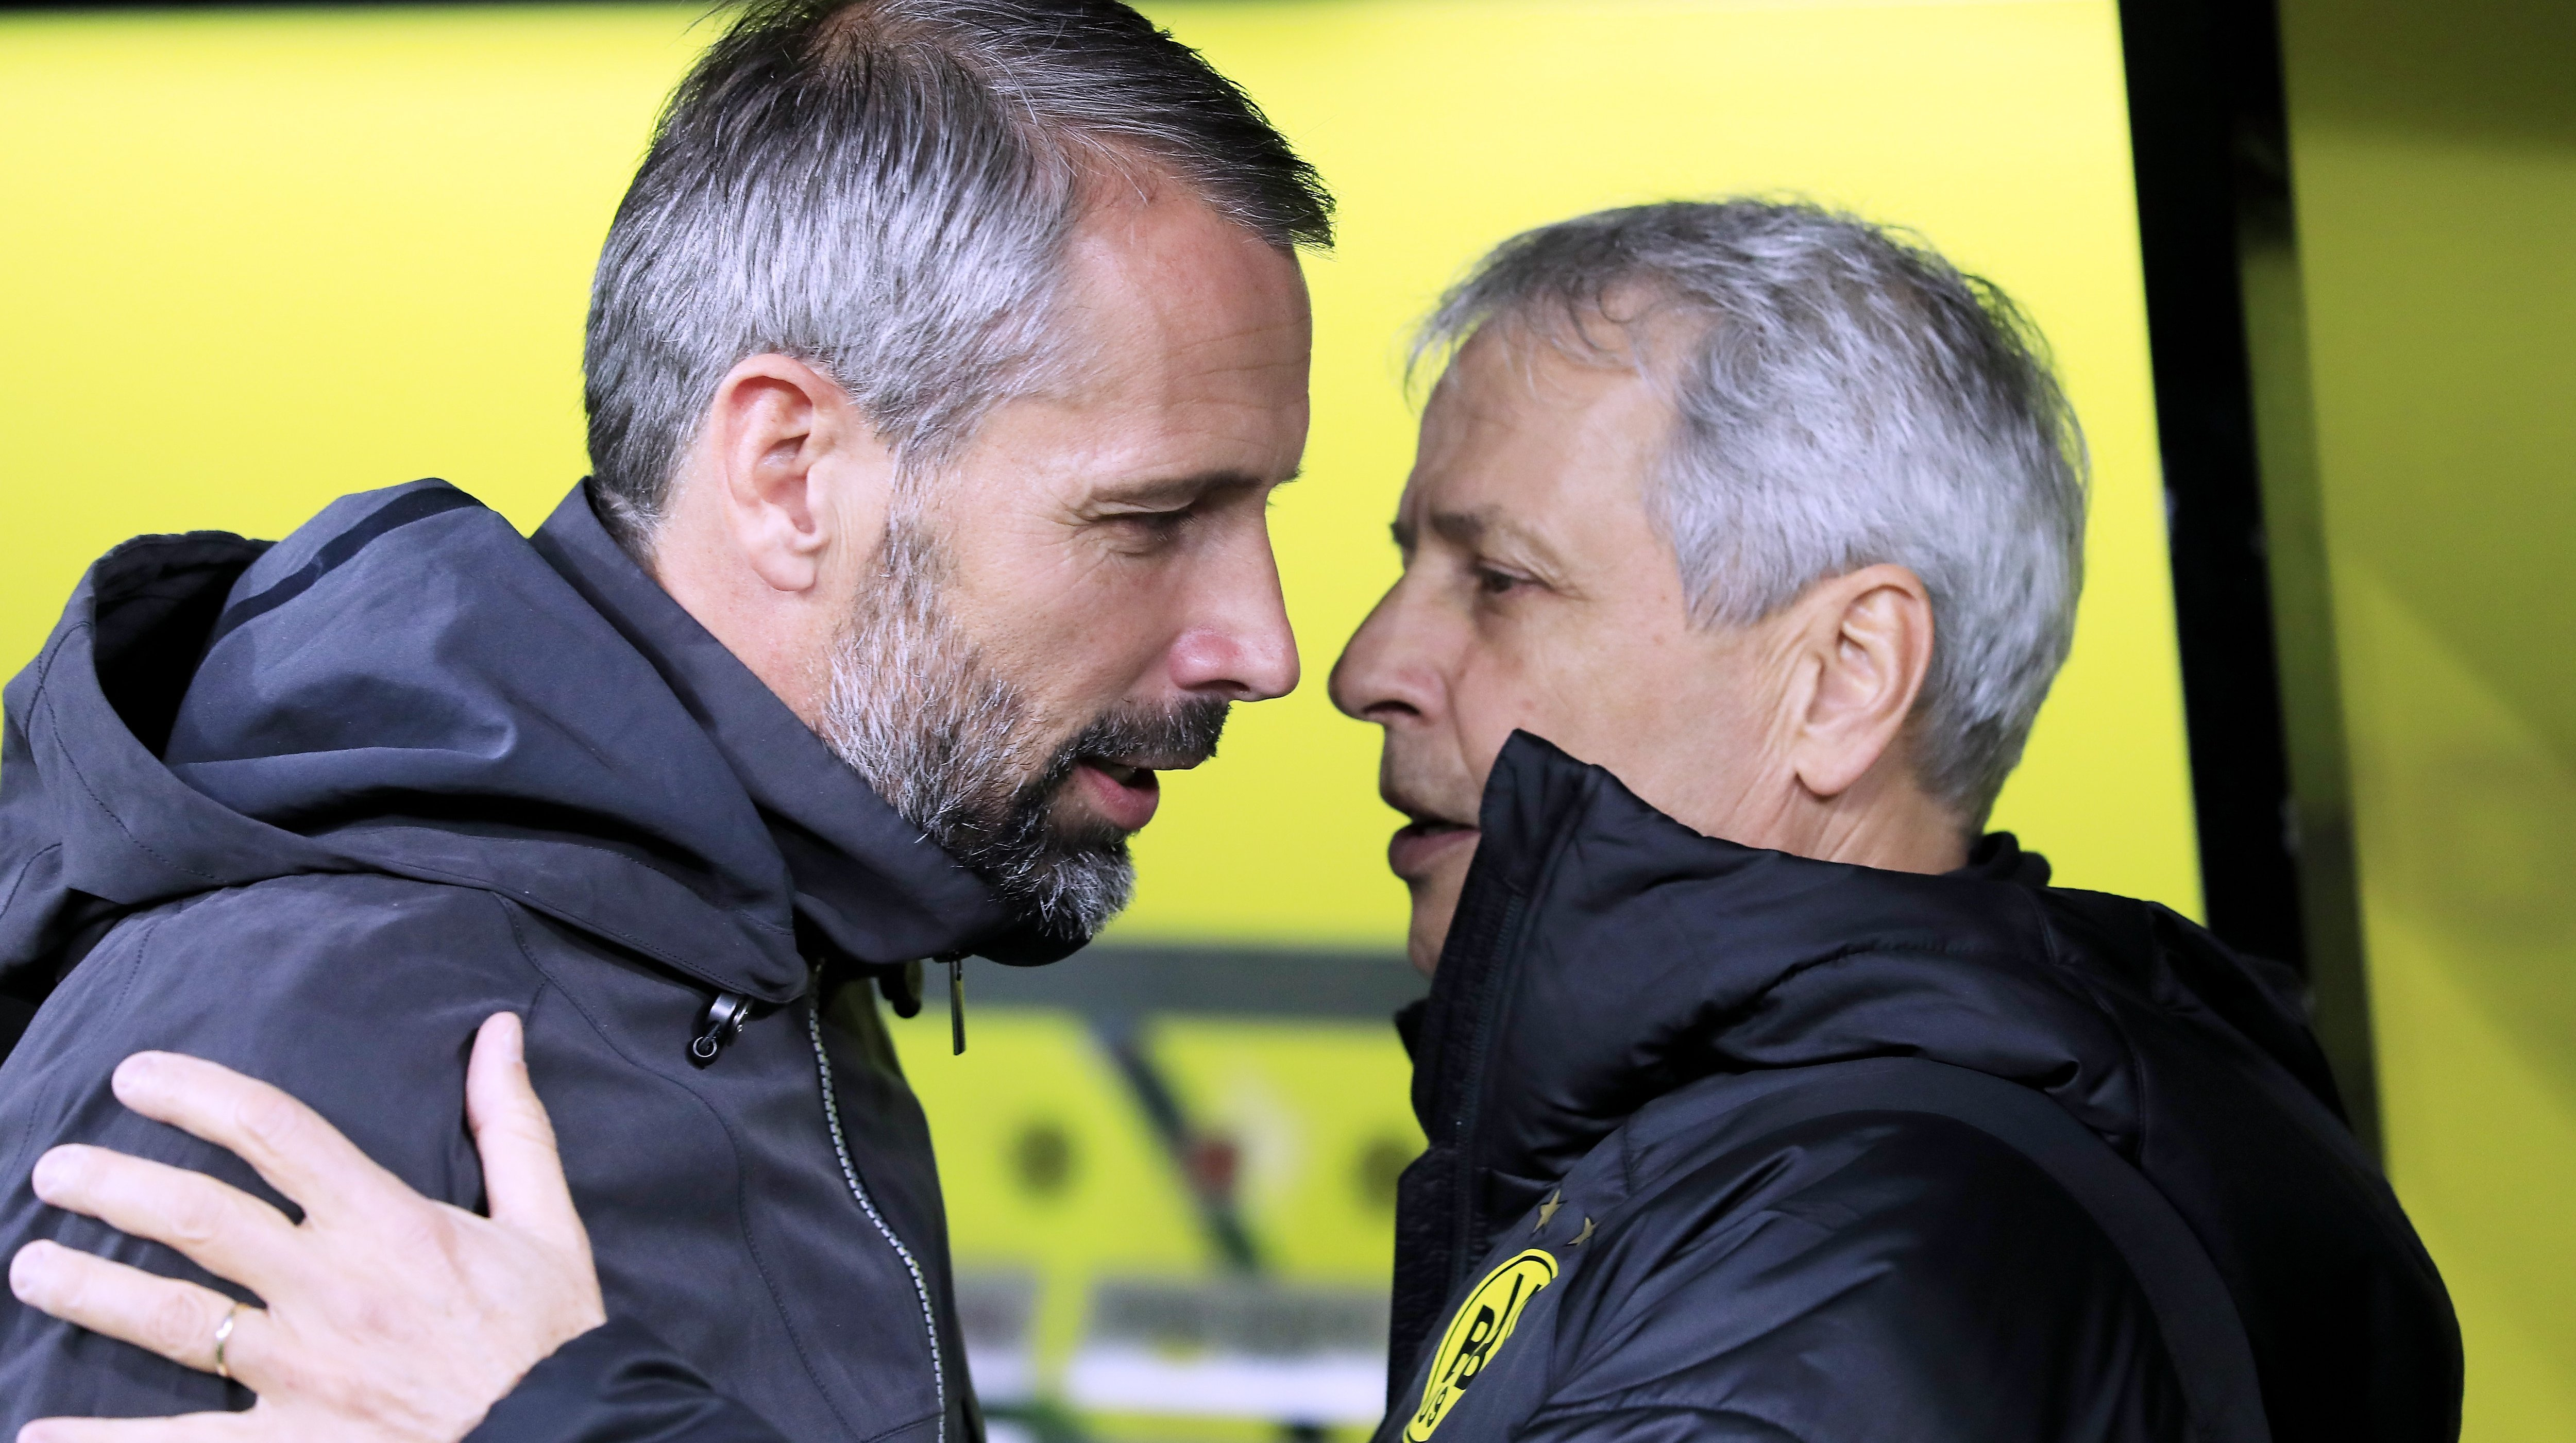 bvb will trainer rose